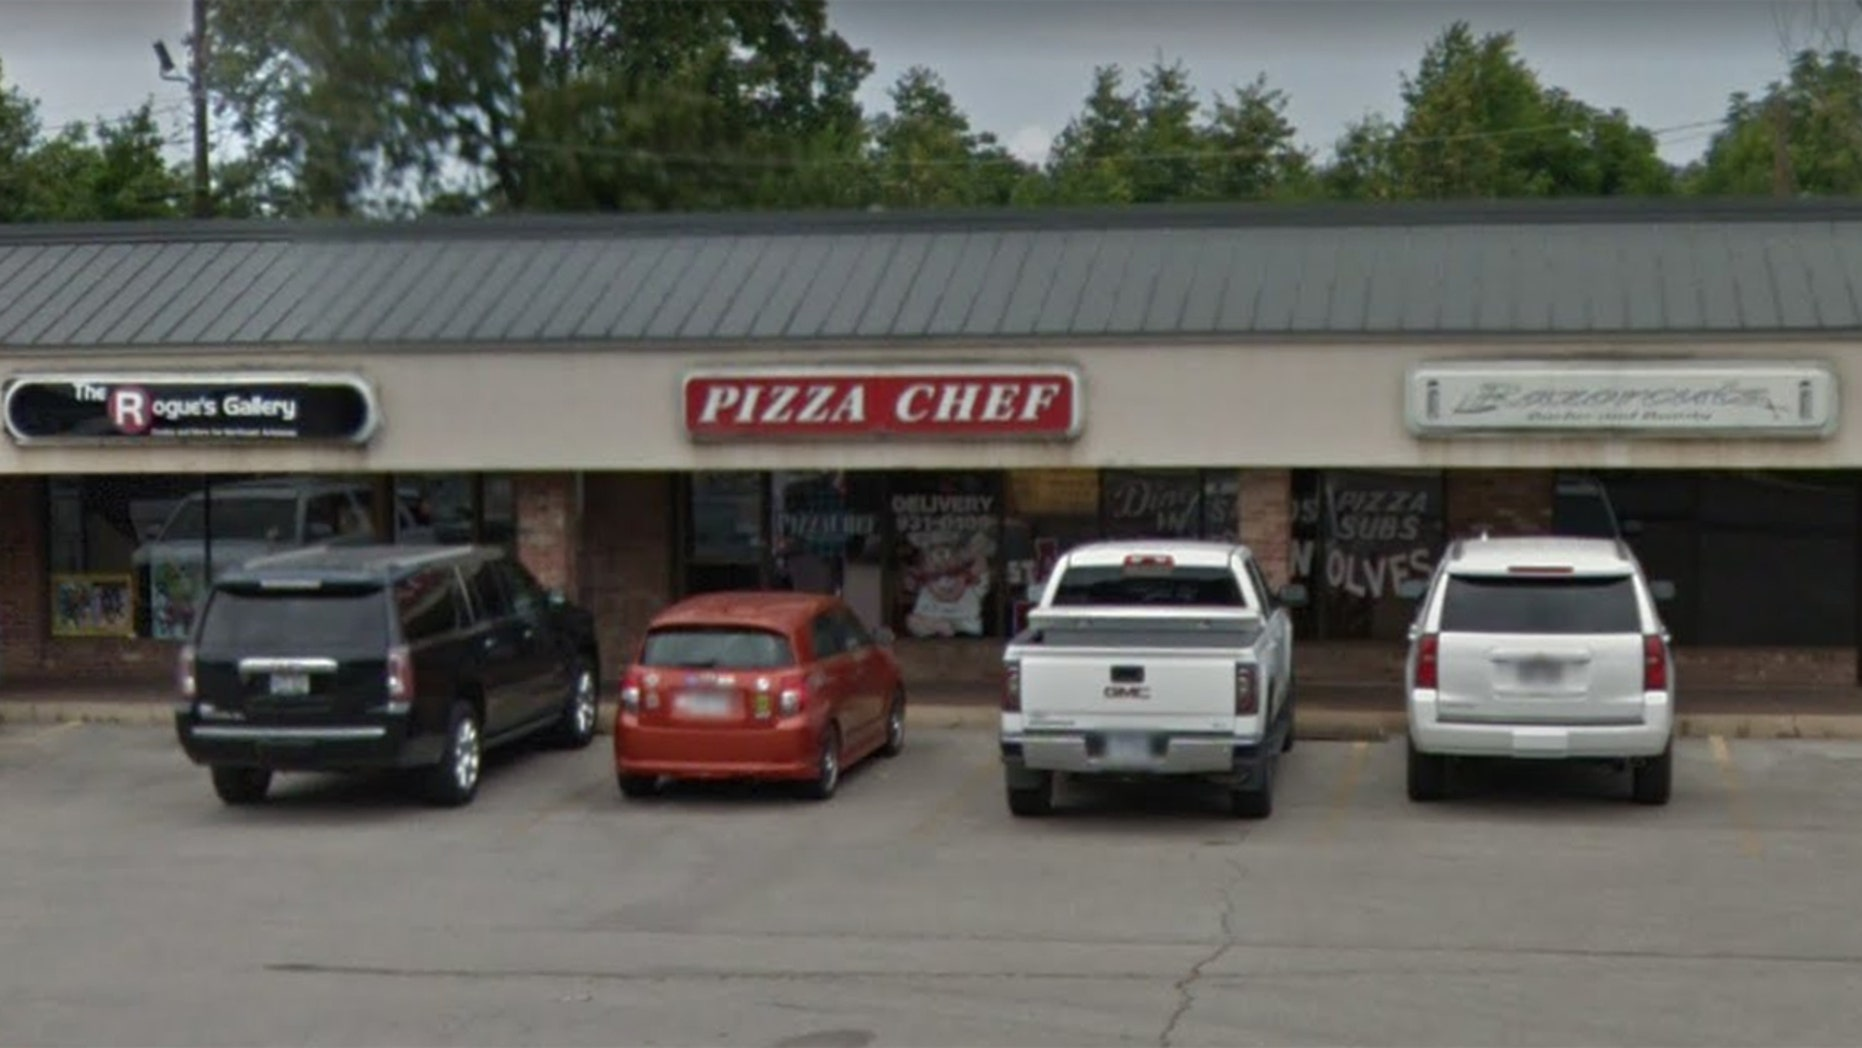 A deer crashed into Pizza Chef grill in Arkansas.